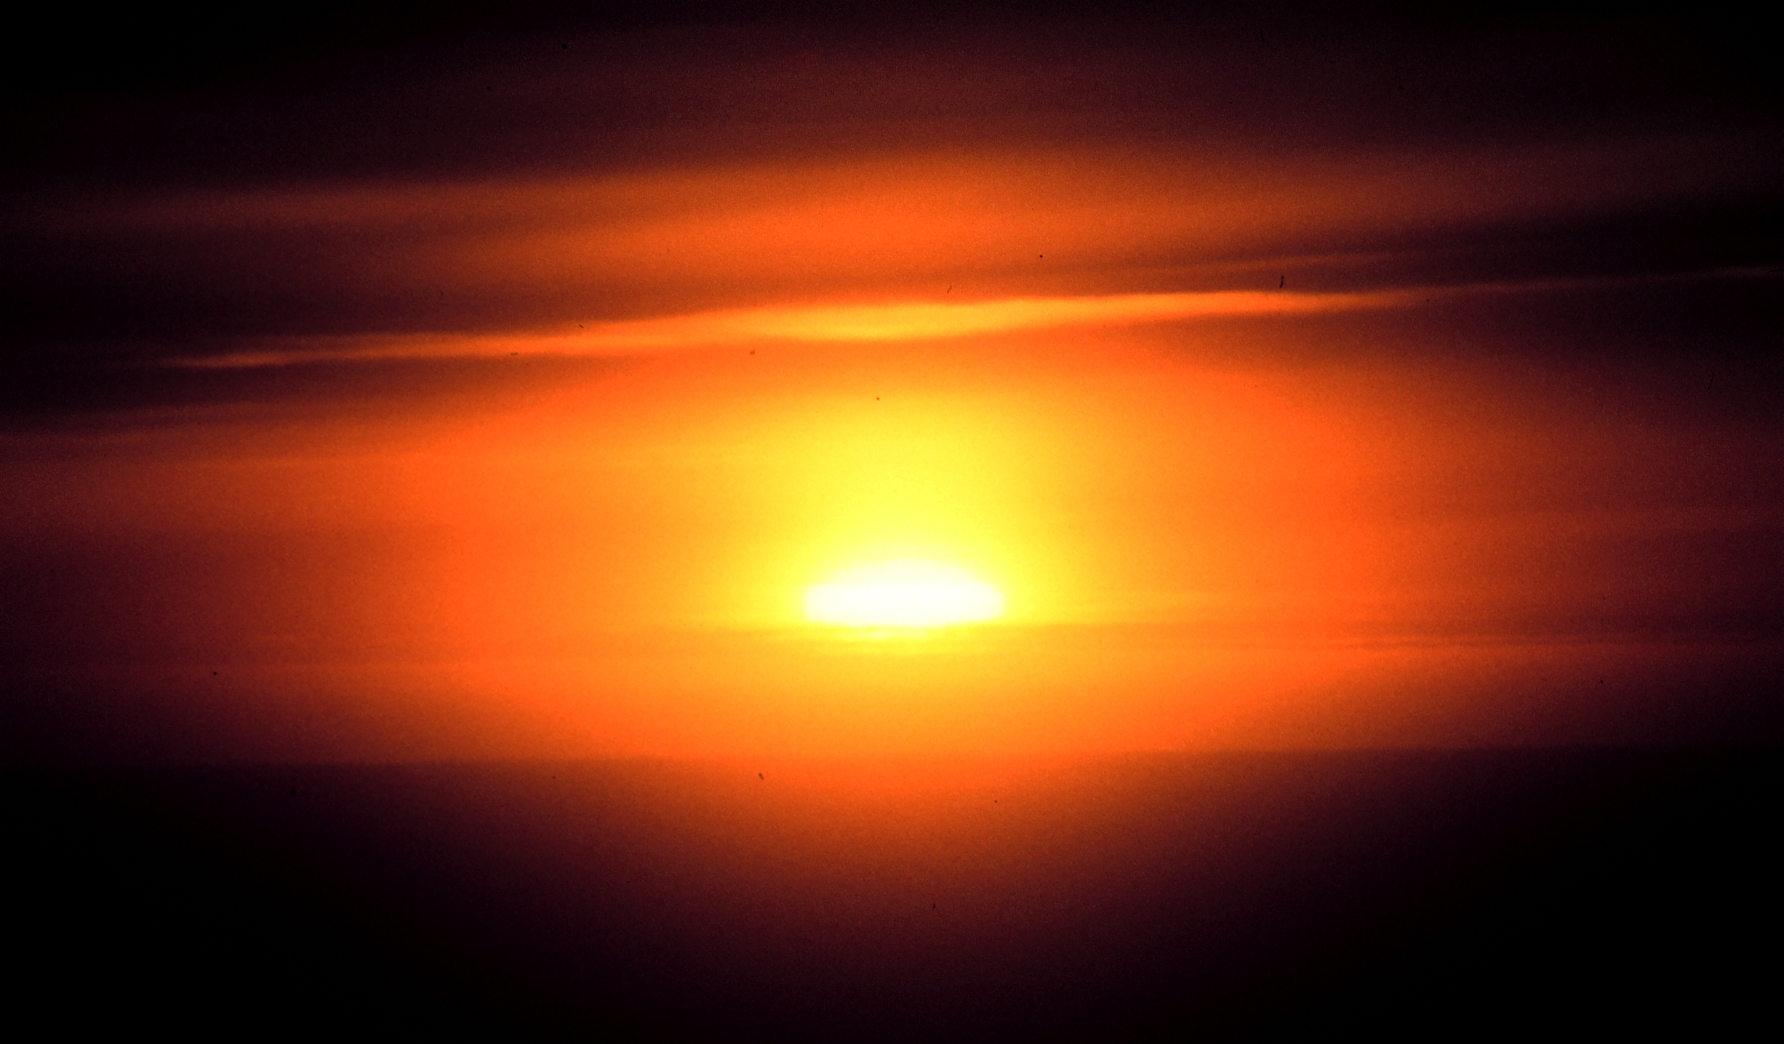 haze_and_clouds_obscure_the_setting_sun_-_noaa